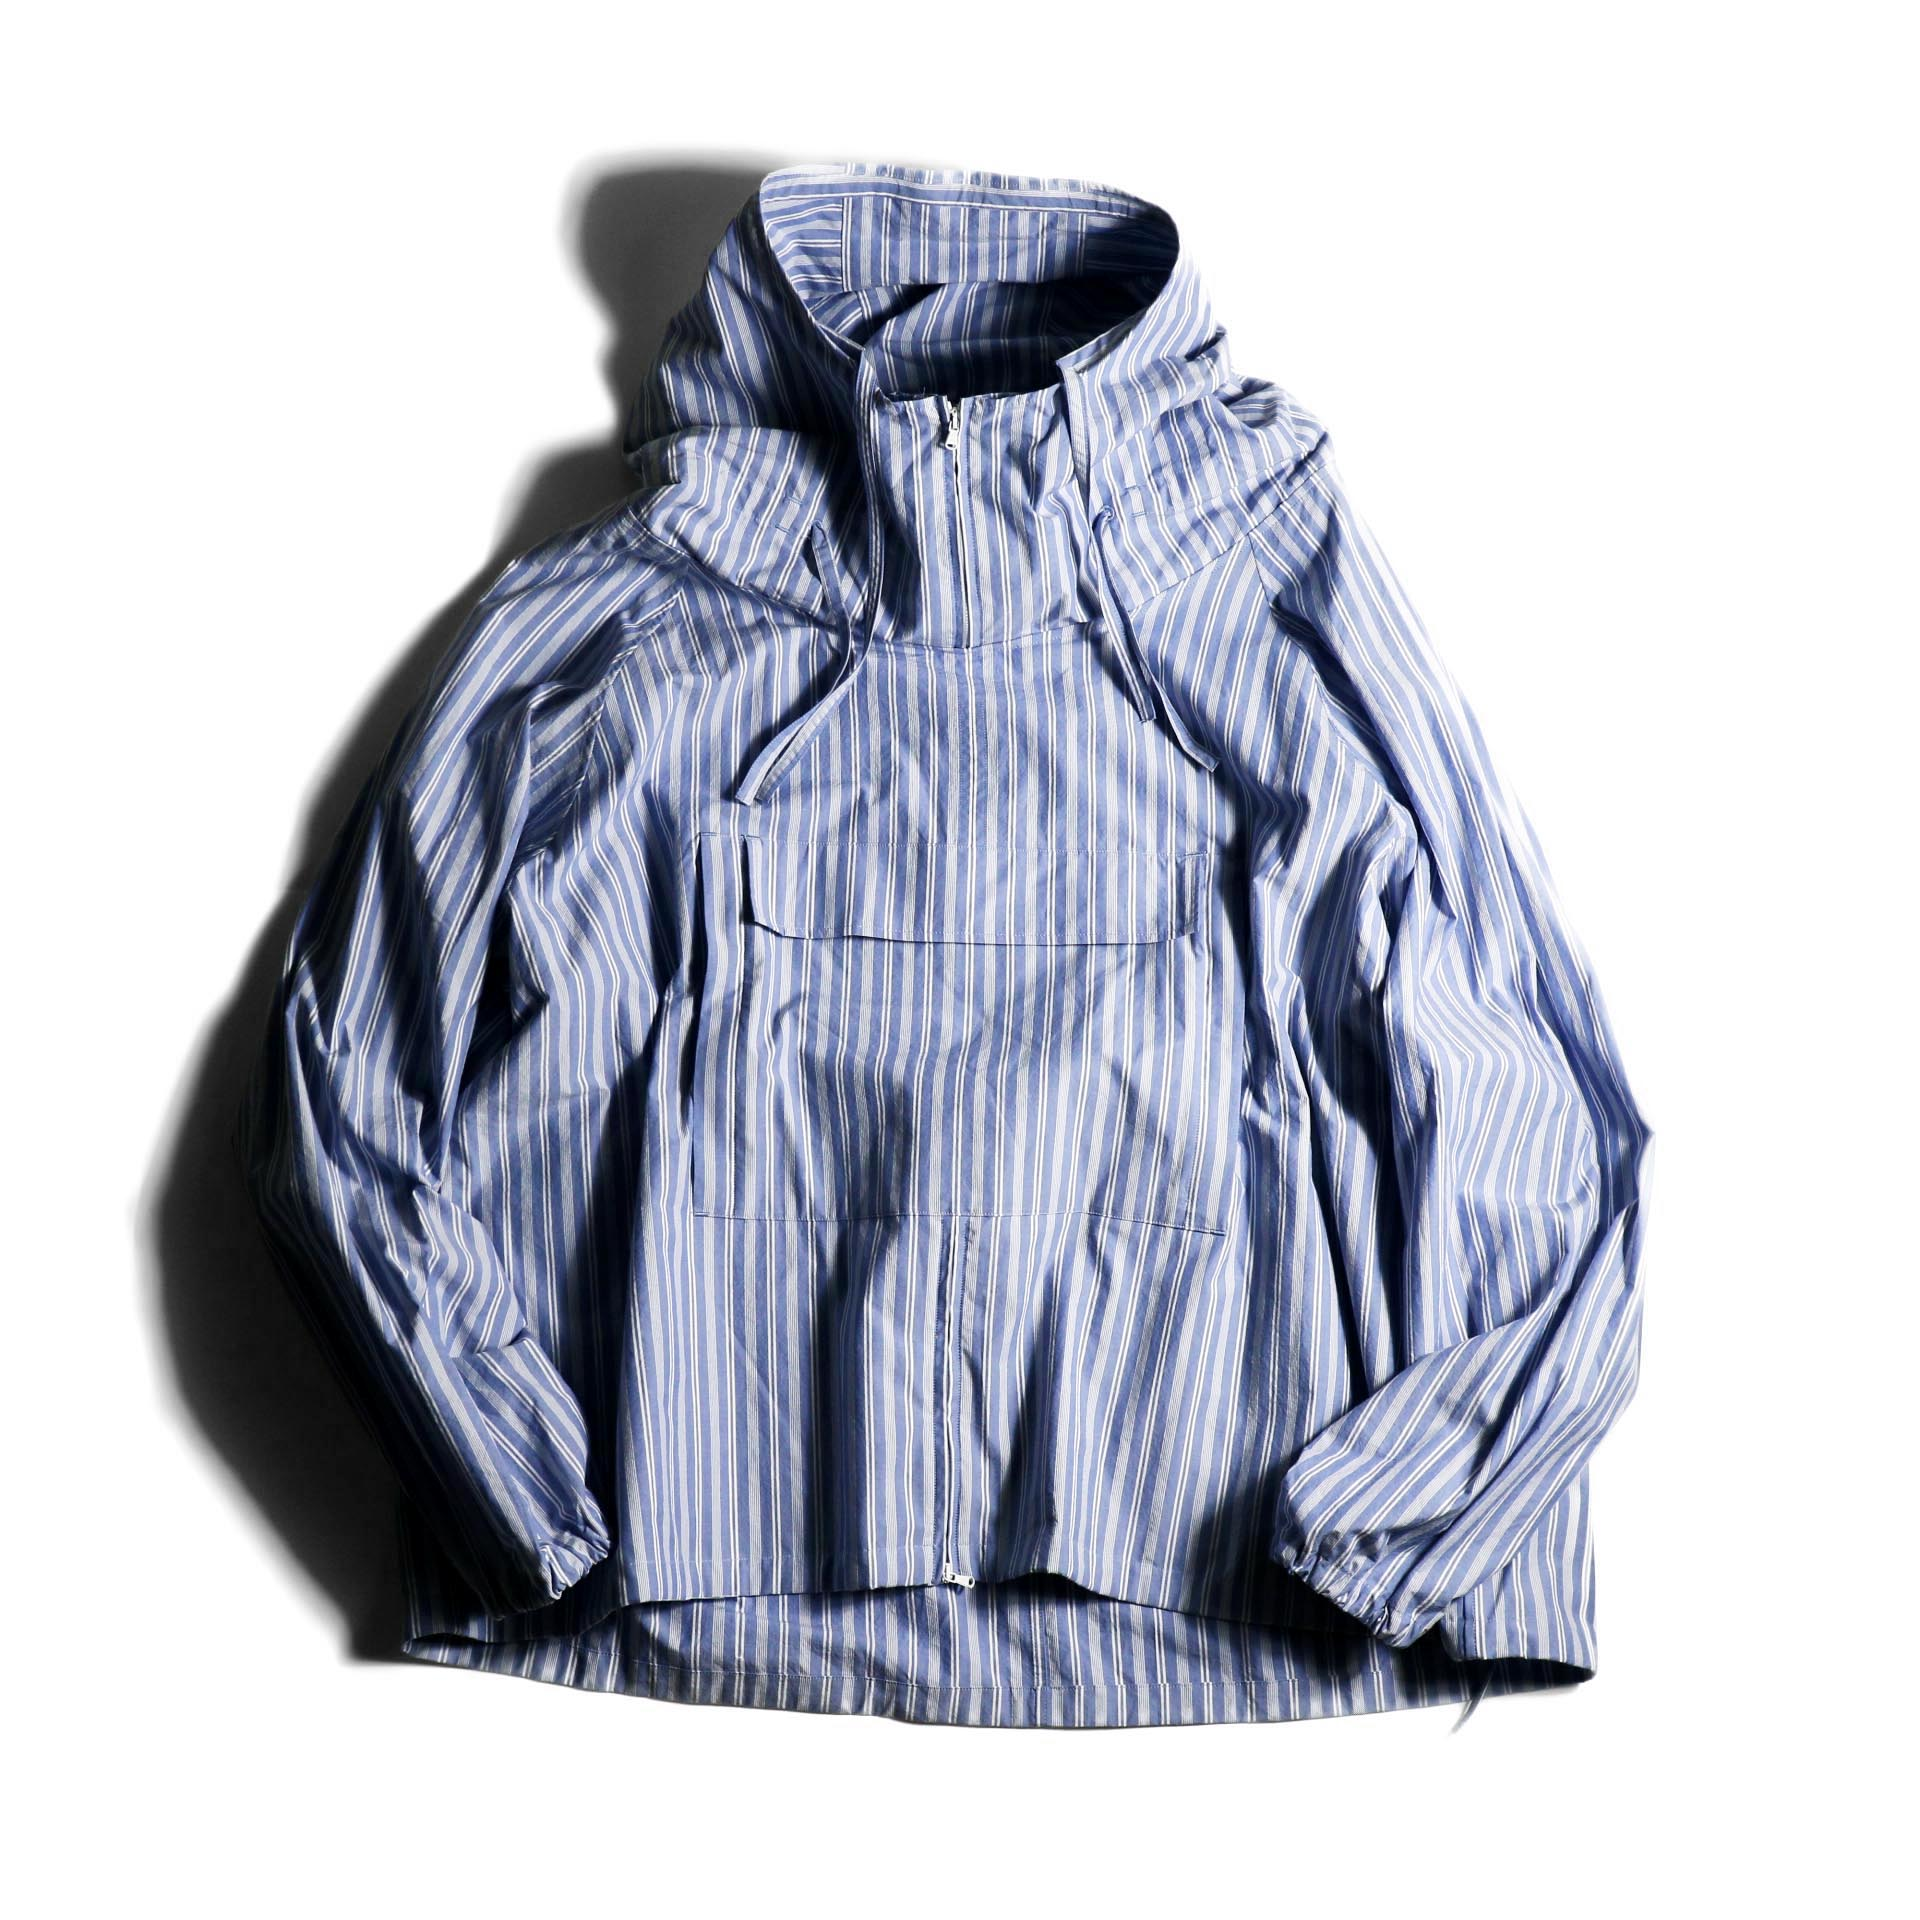 UNUSED / US1793 Stripe Pullover Jacket. (Sax Stripe)